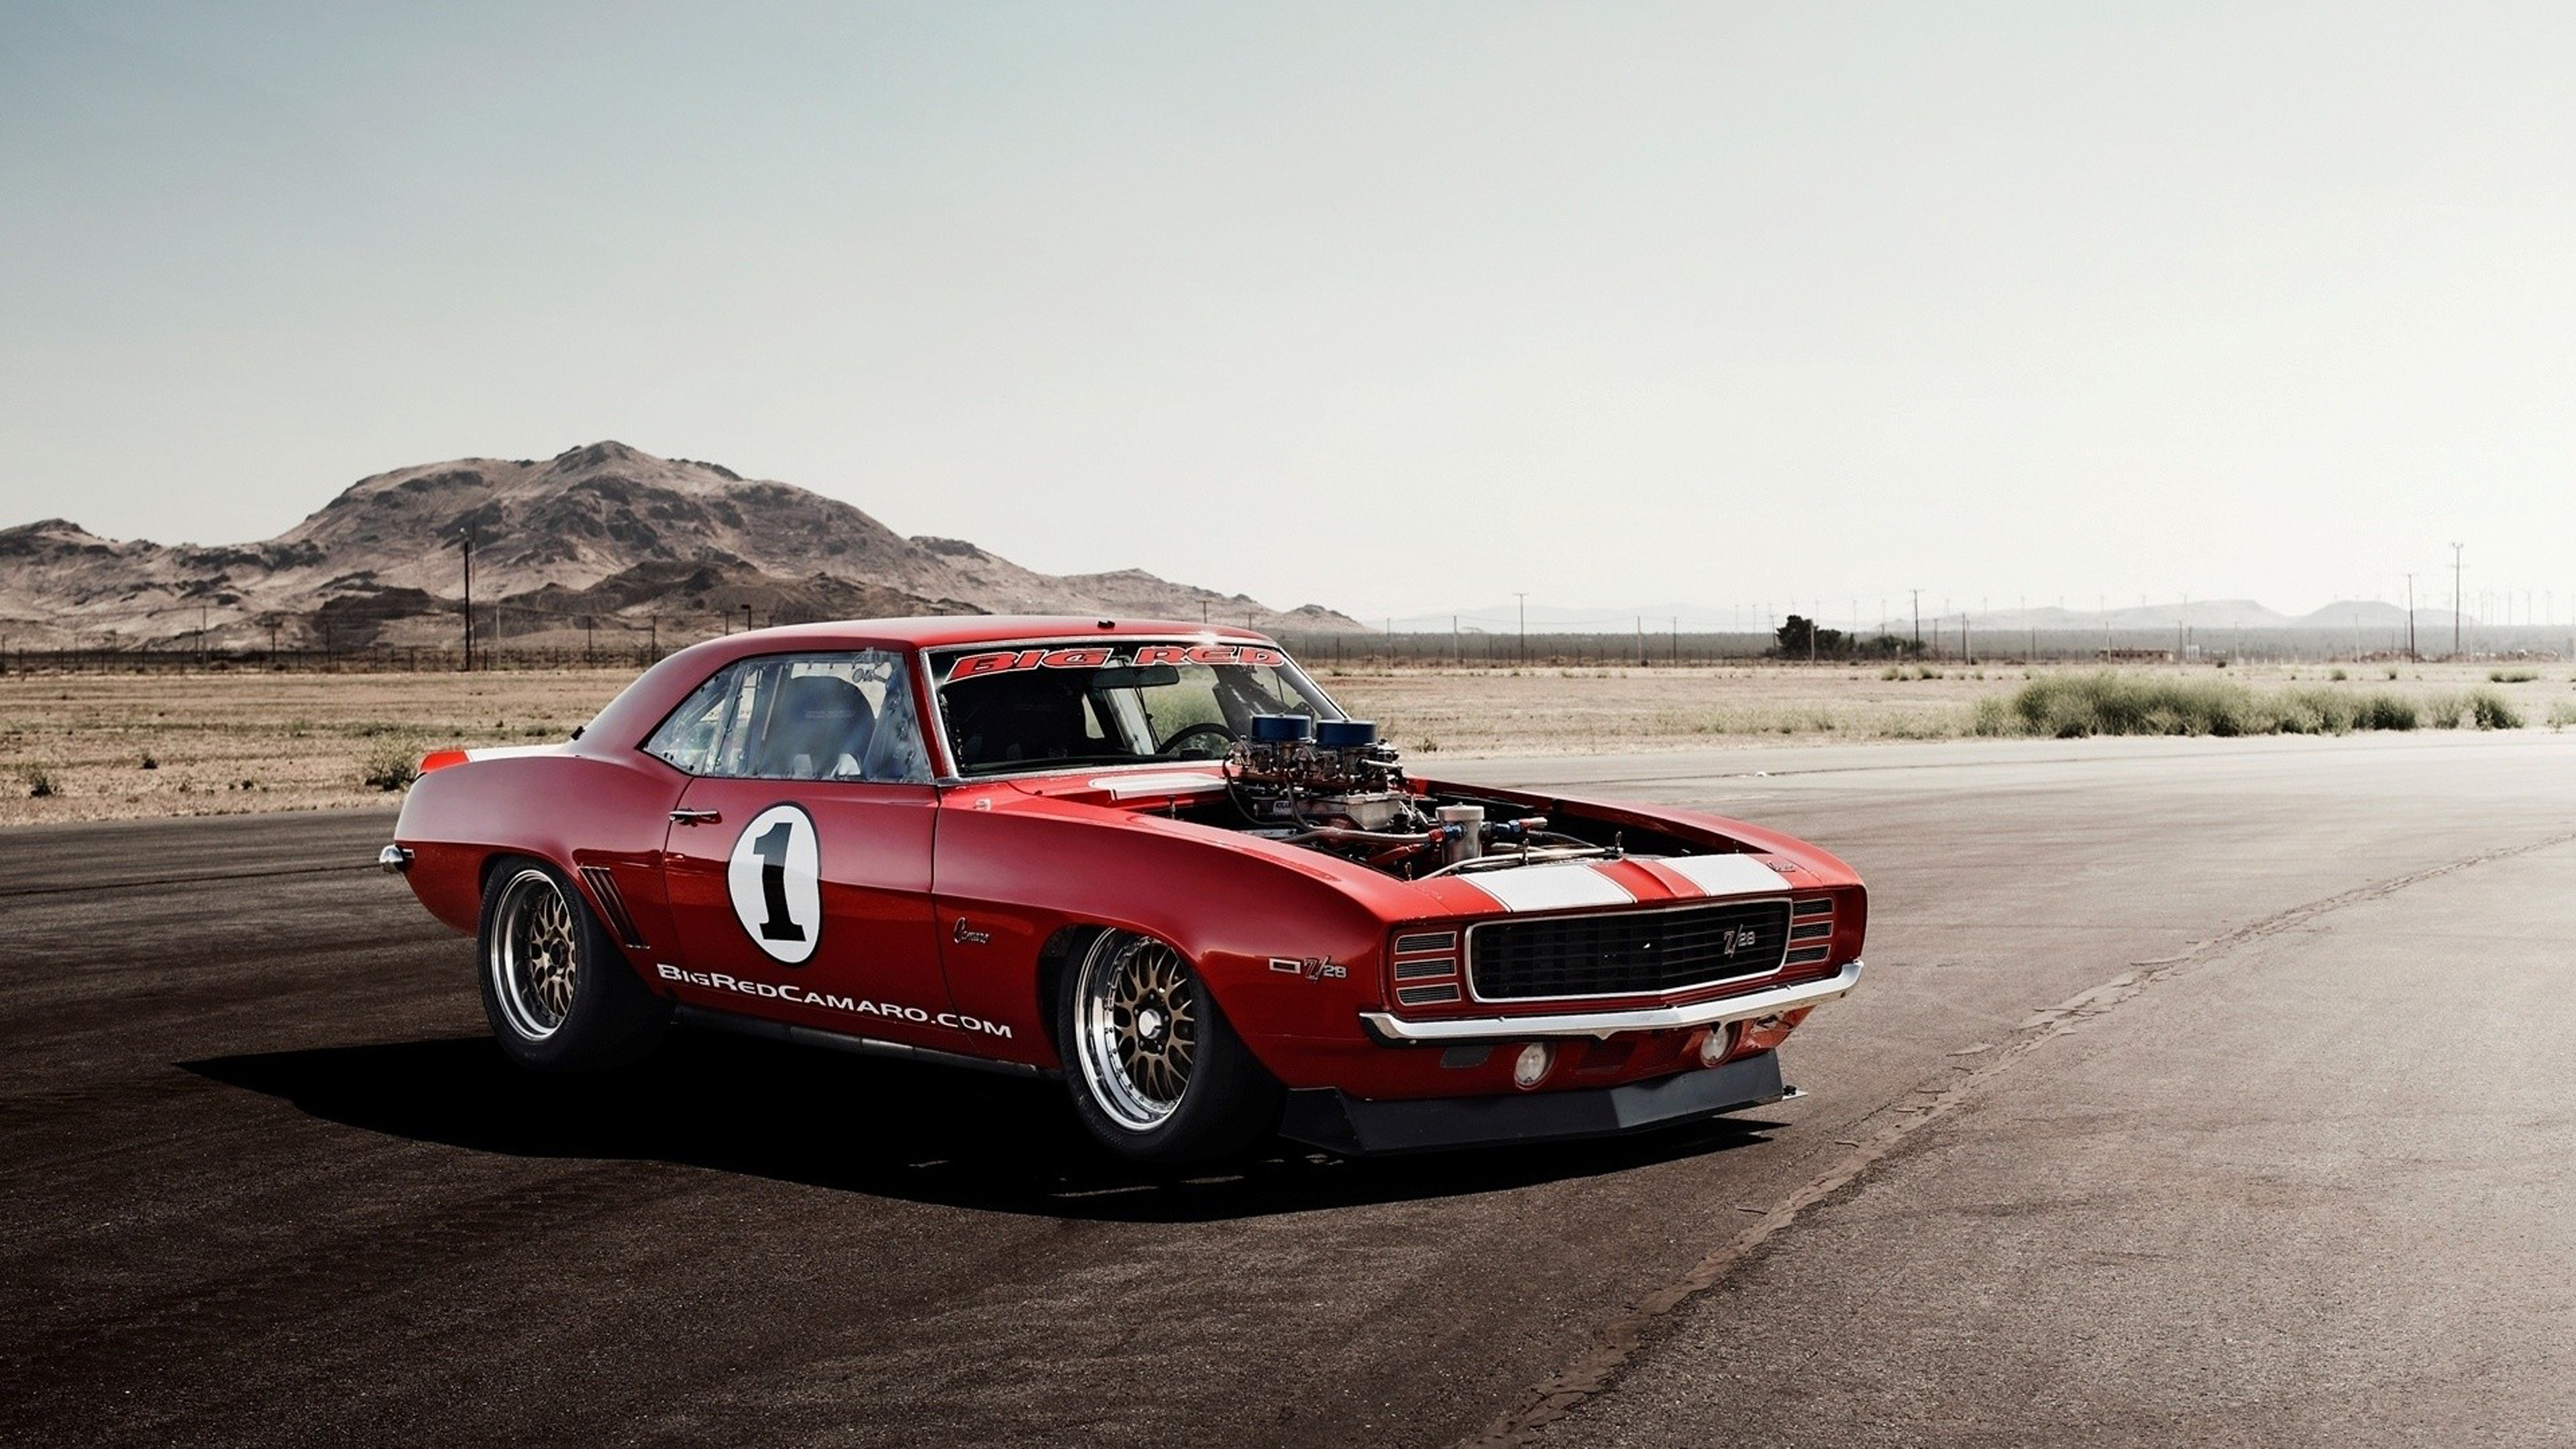 Wallpaper Muscle Car Image Gallery Hcpr